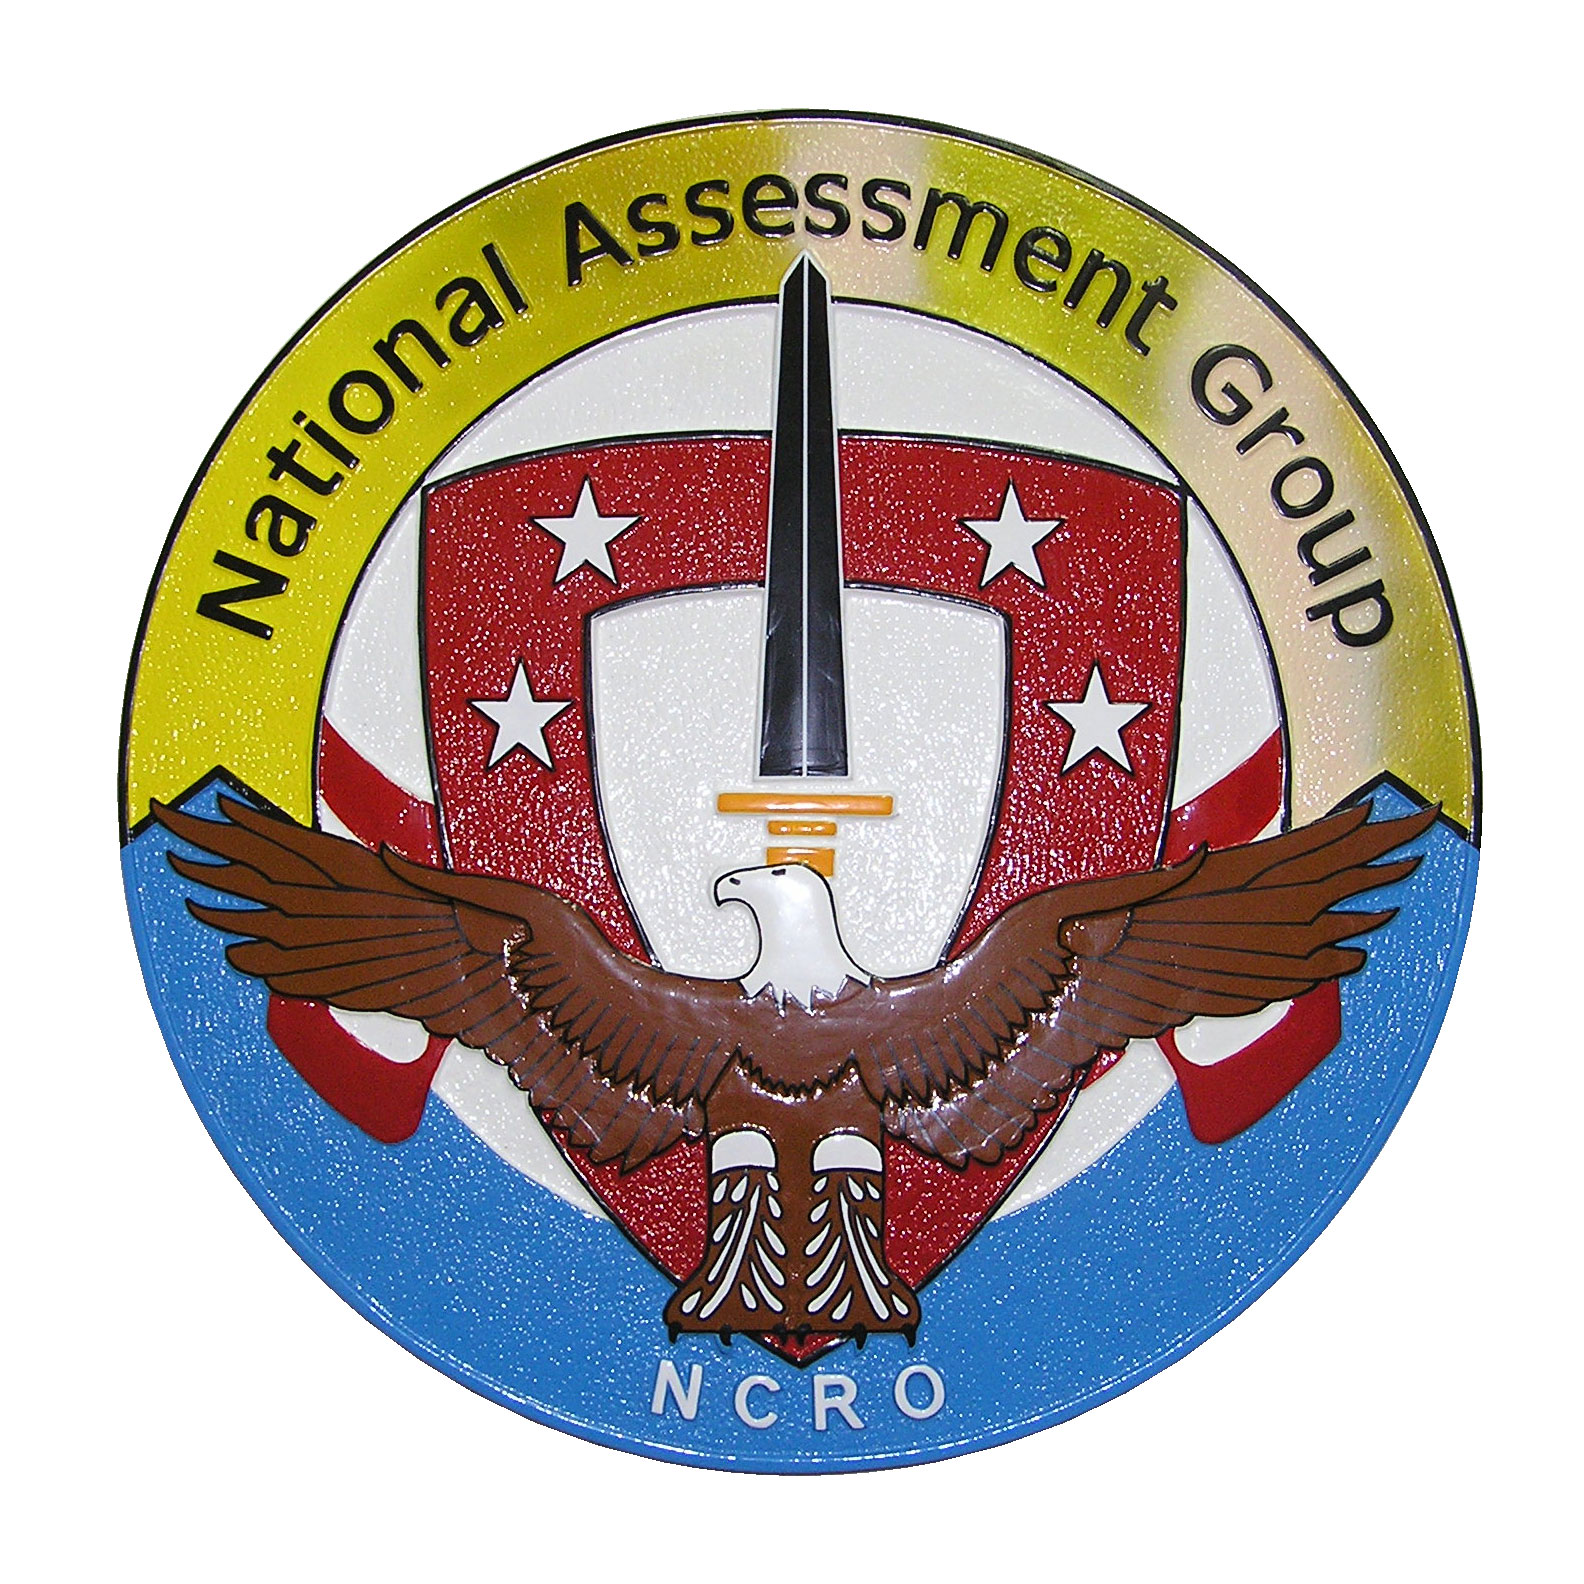 National Assessment Group Seal